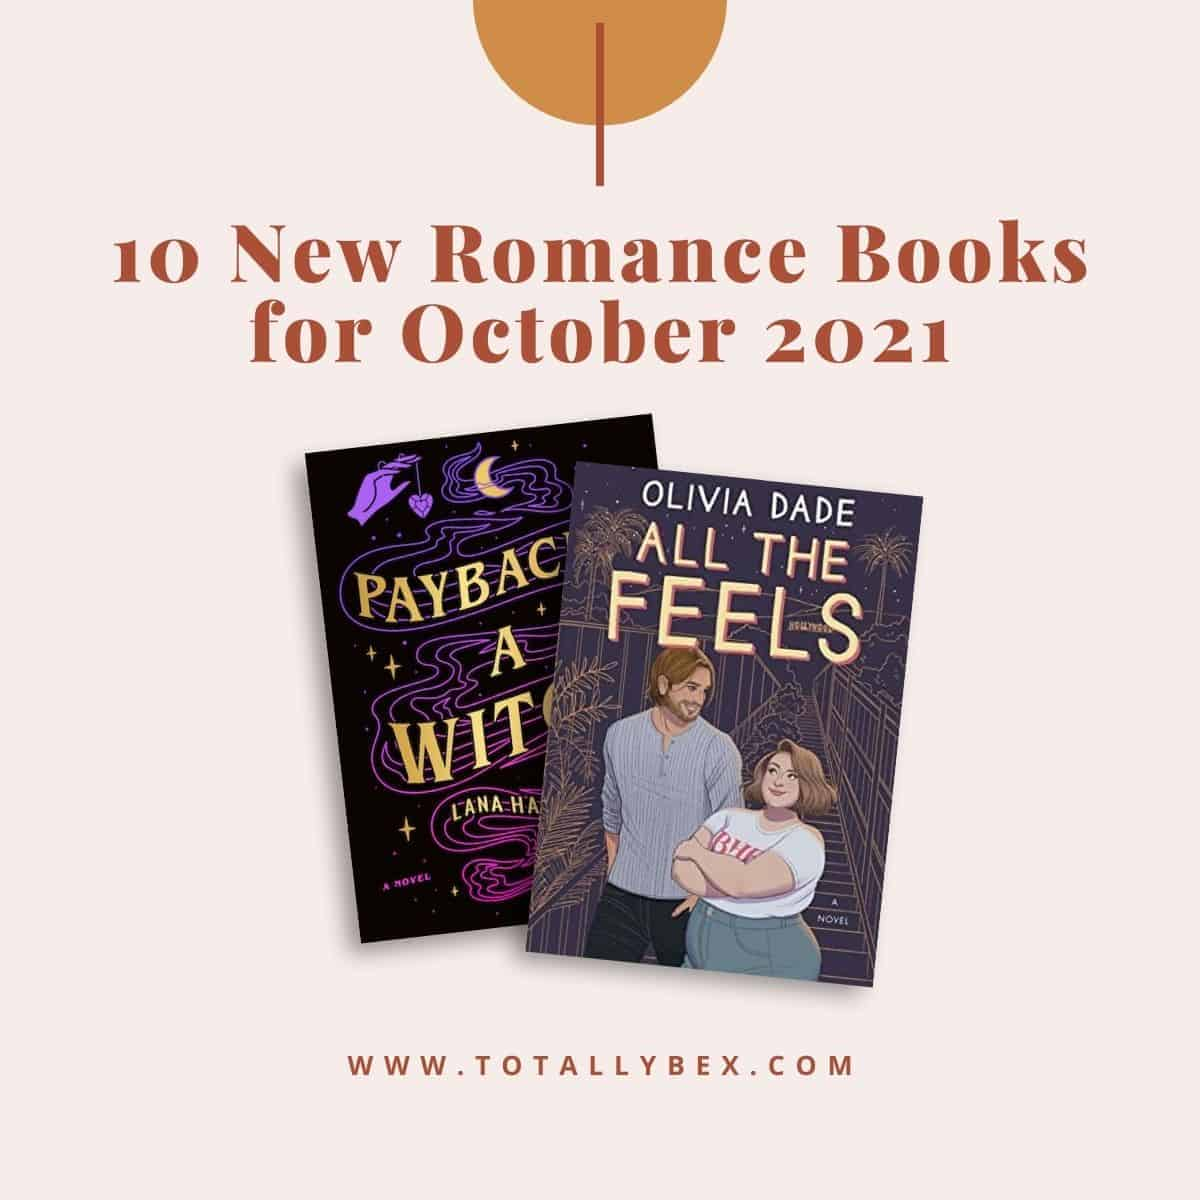 10 New Romance Books for October 2021 is a curated list of contemporary romance books, paranormal romance, and sports romance to add to your TBR!